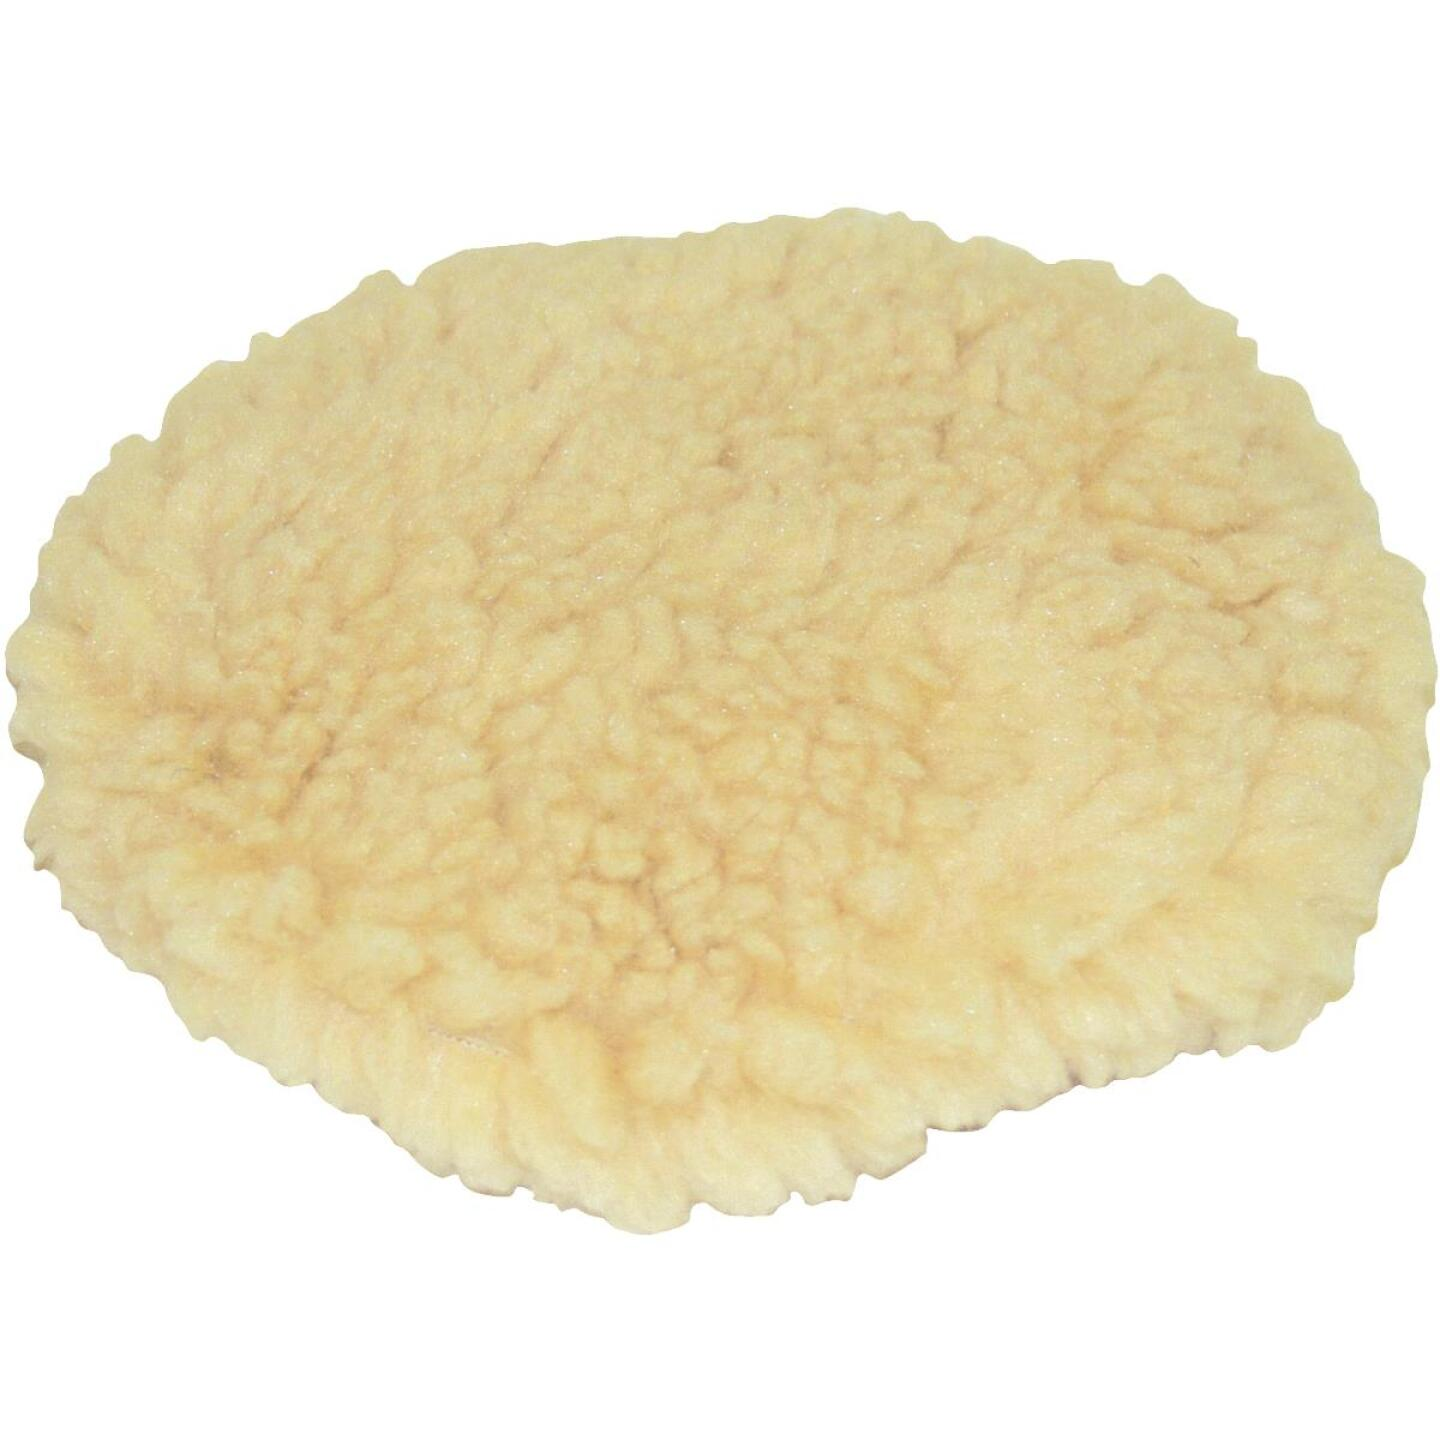 "Auto Spa 7"" To 8"" Washable Wool Polishing Bonnet Image 1"